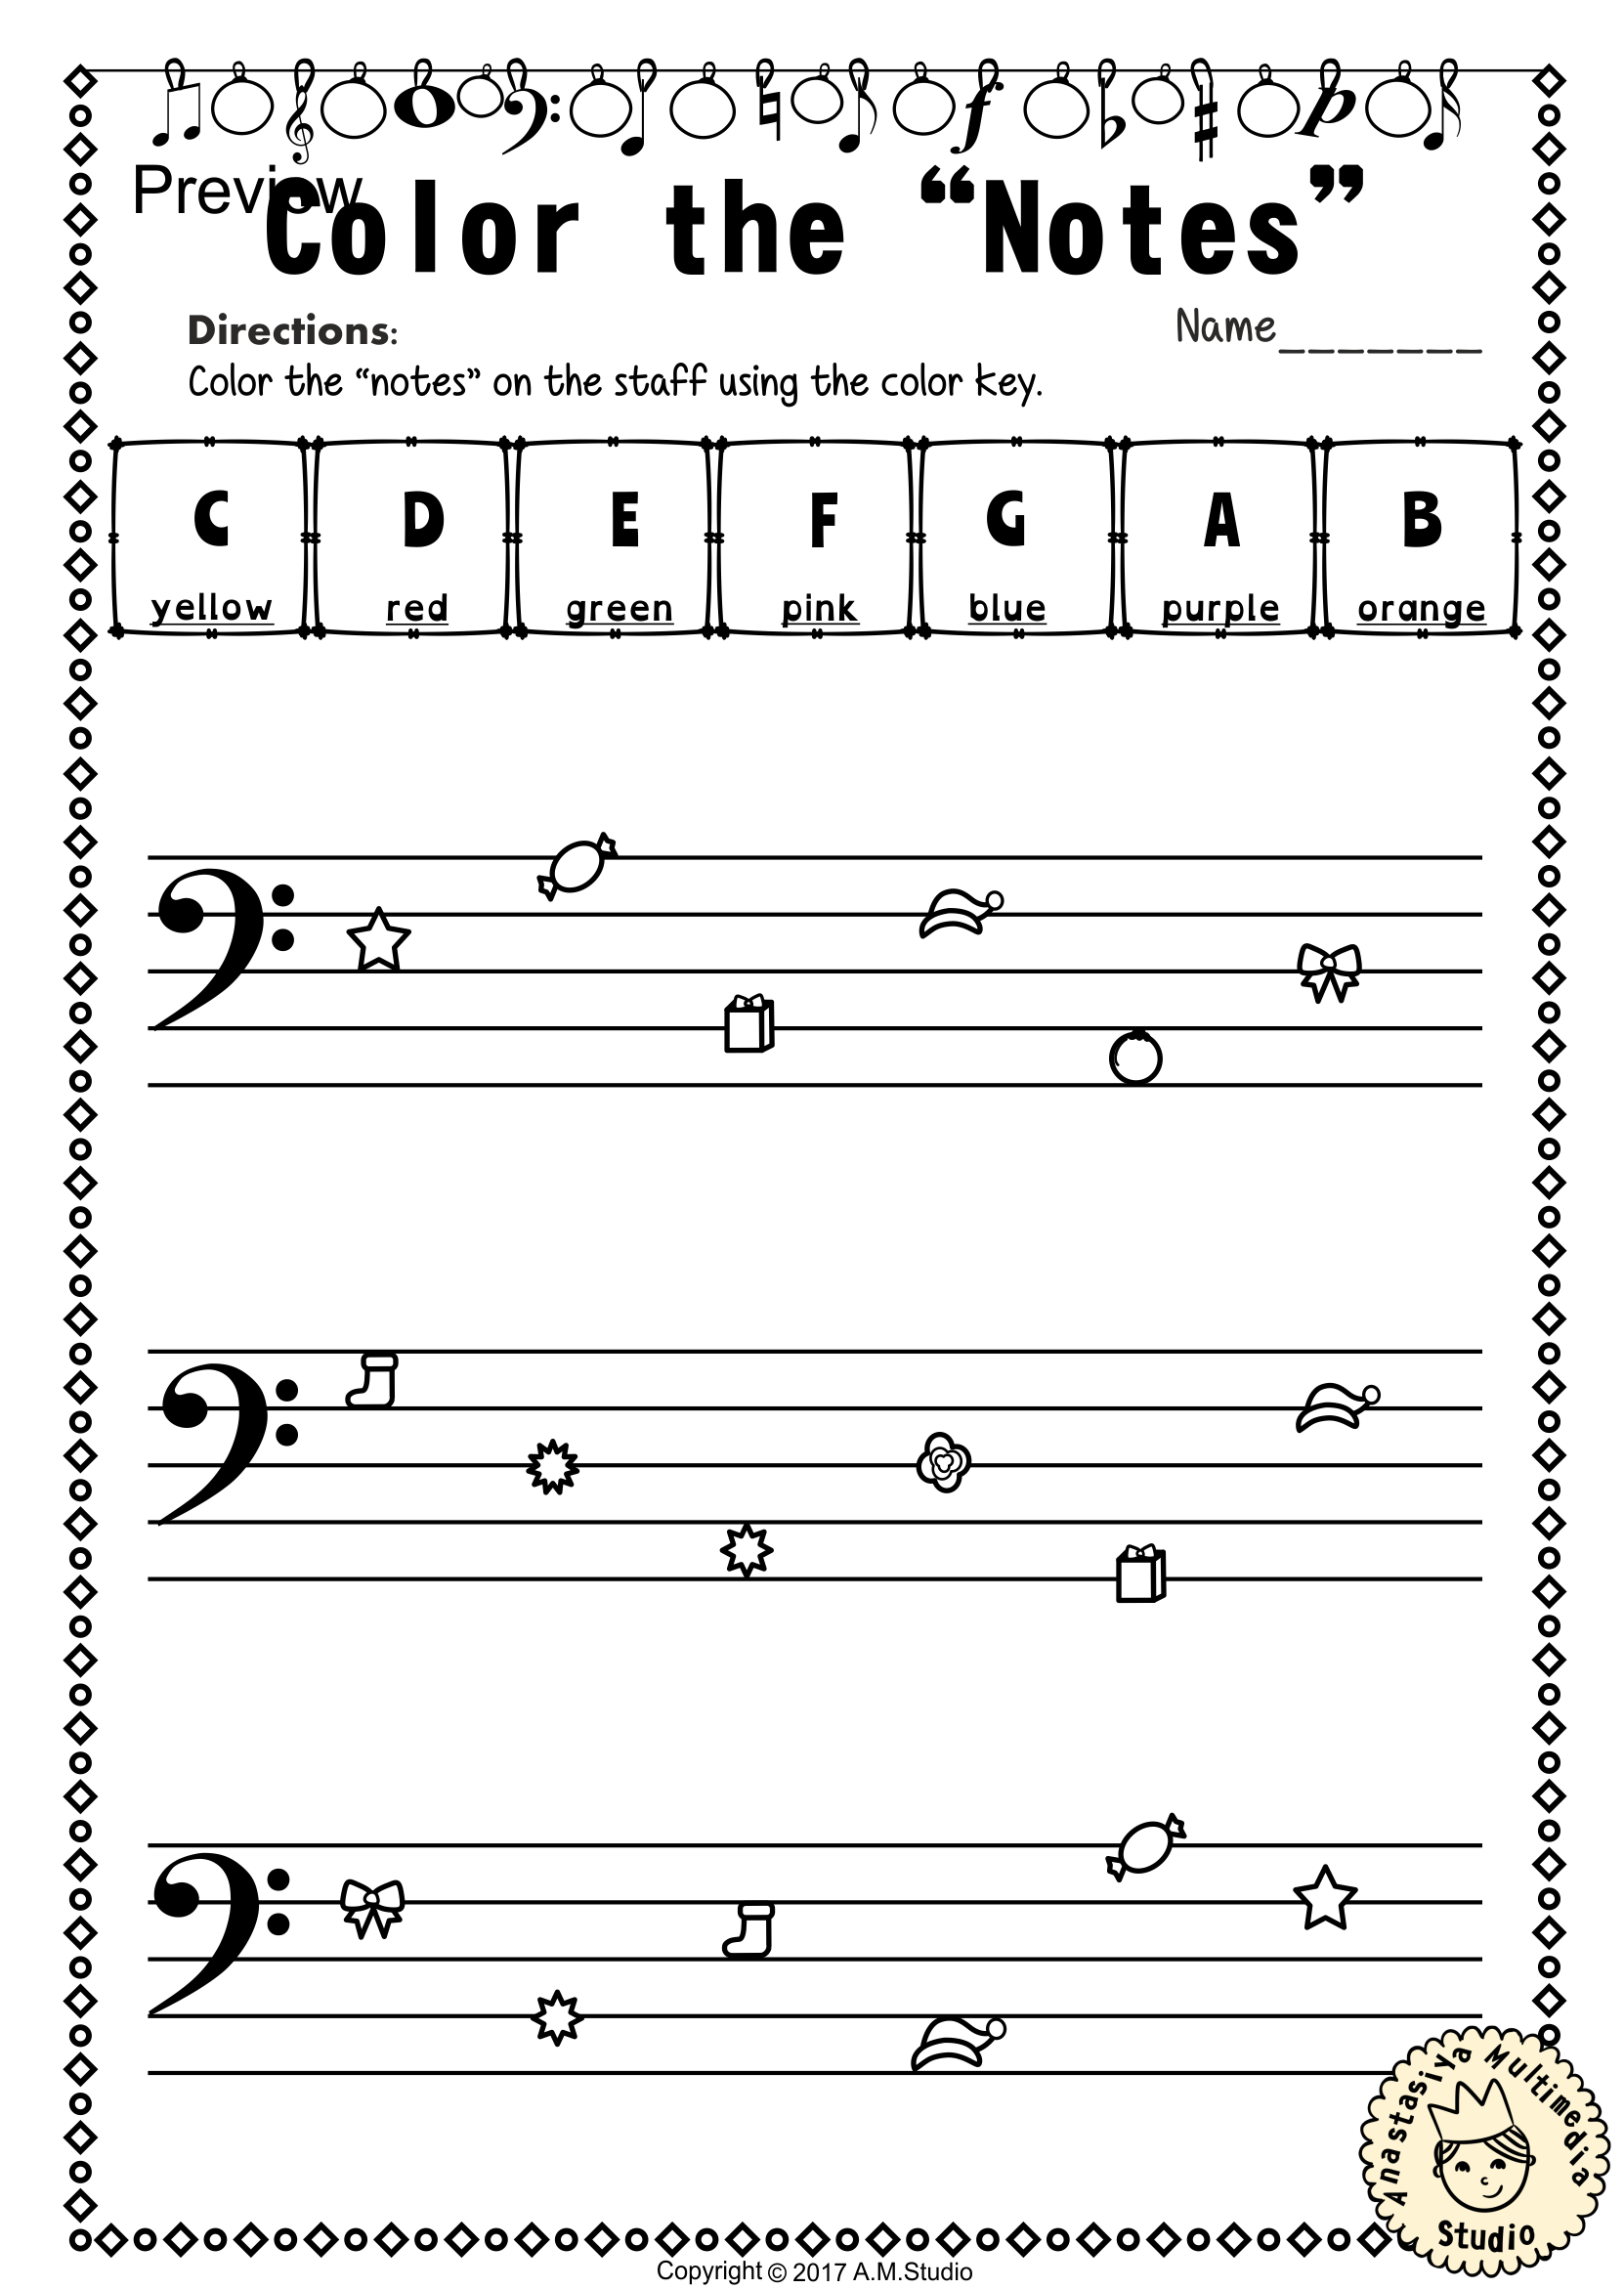 This Set Of 12 Music Worksheets Christmas Themed Is Designed To Help Your Students Practice Identifyi Piano Music Lessons Teaching Music Elementary Music Class [ 2342 x 1662 Pixel ]